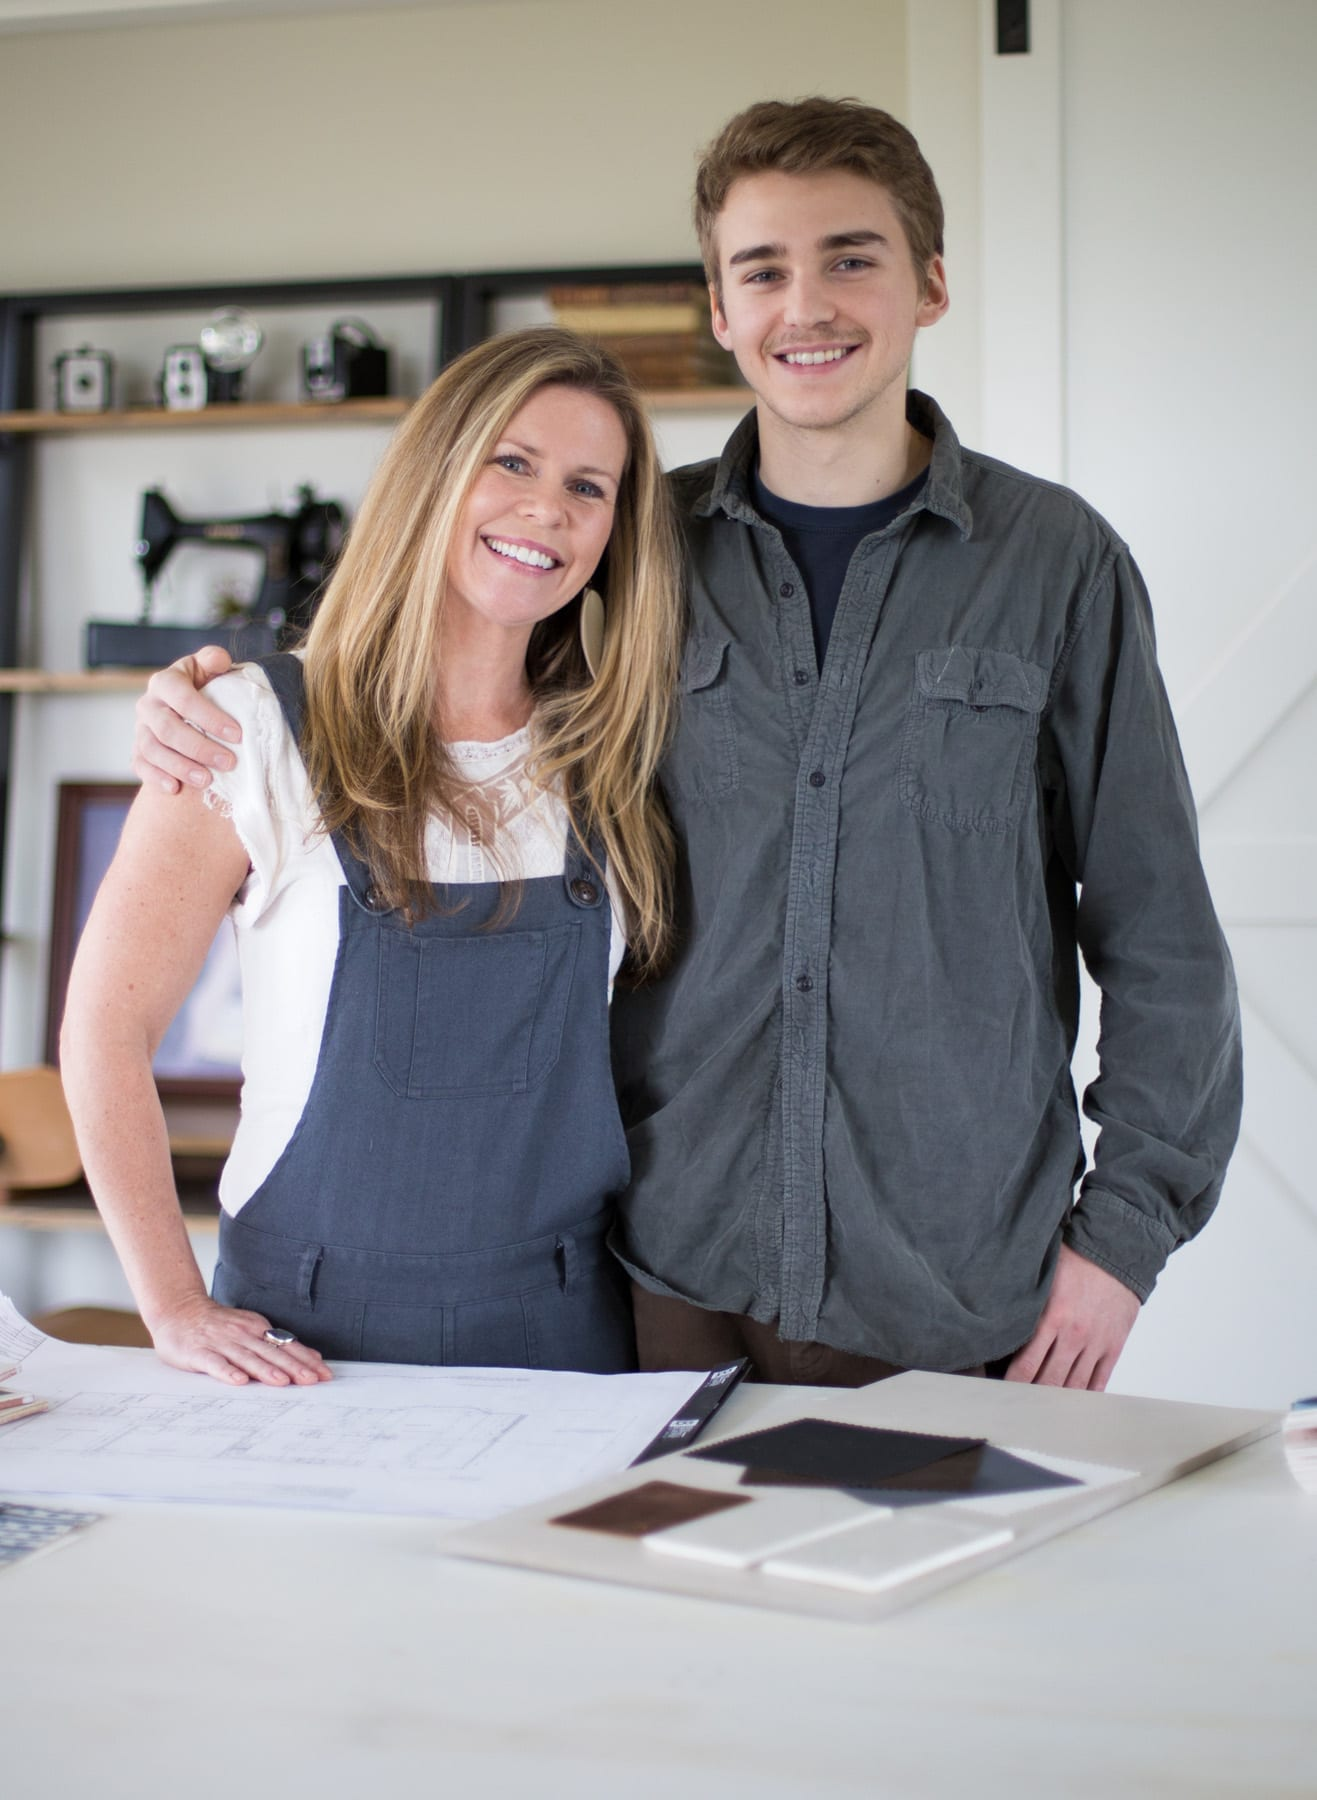 Mom and Me HGTV home style and design show based in Bend, Oregon